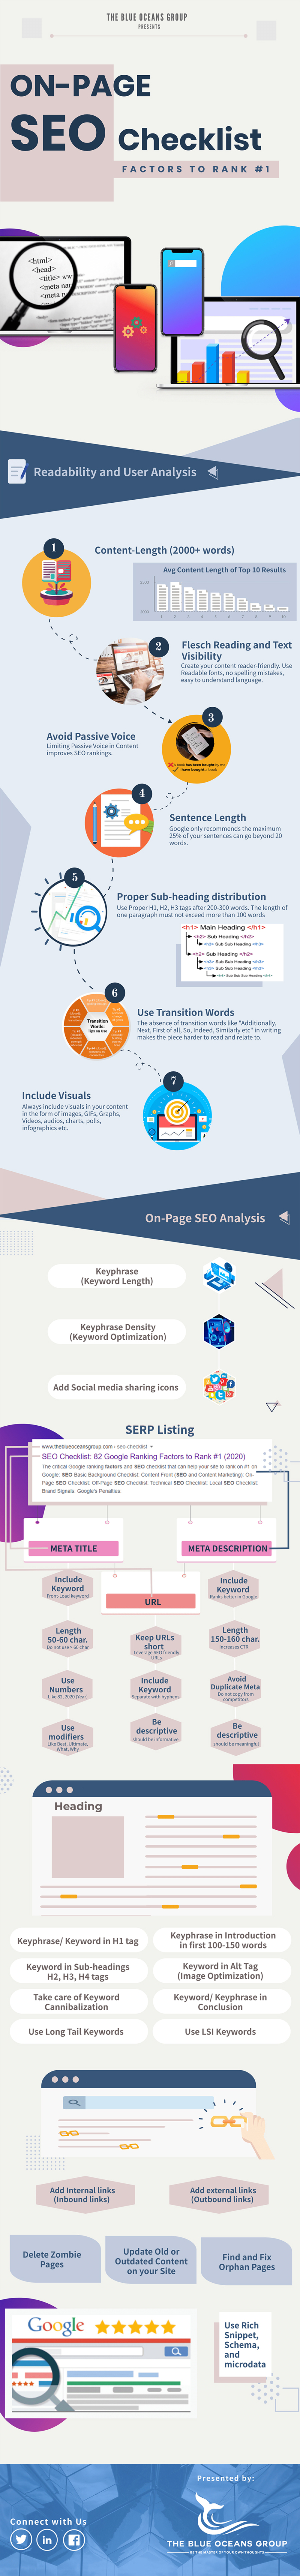 Infographic about on-page SEO